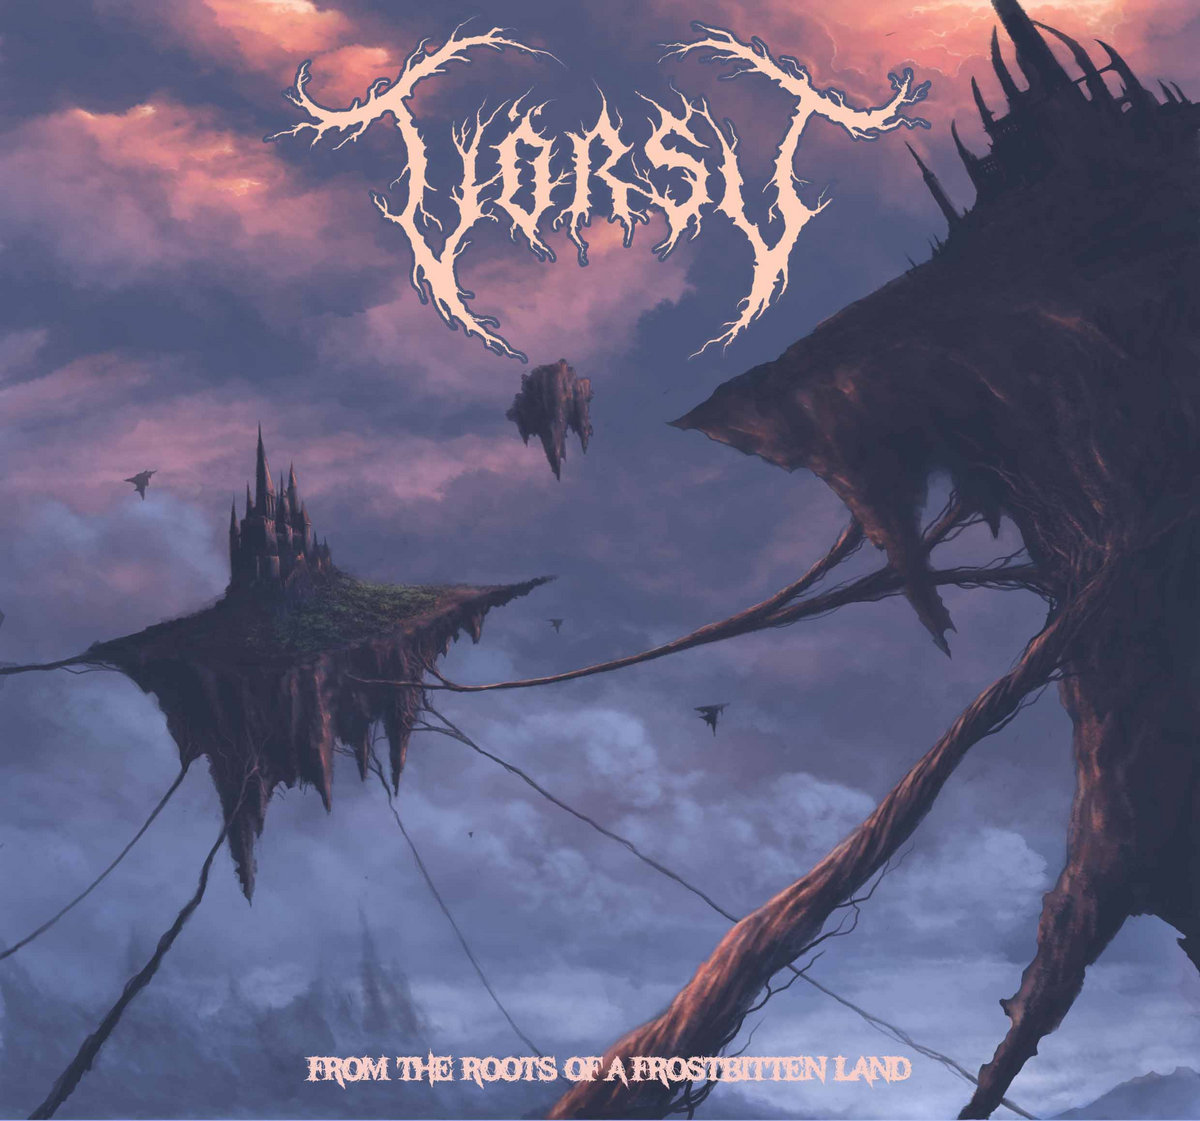 Vörst - From the Roots of a Frostbitten Land